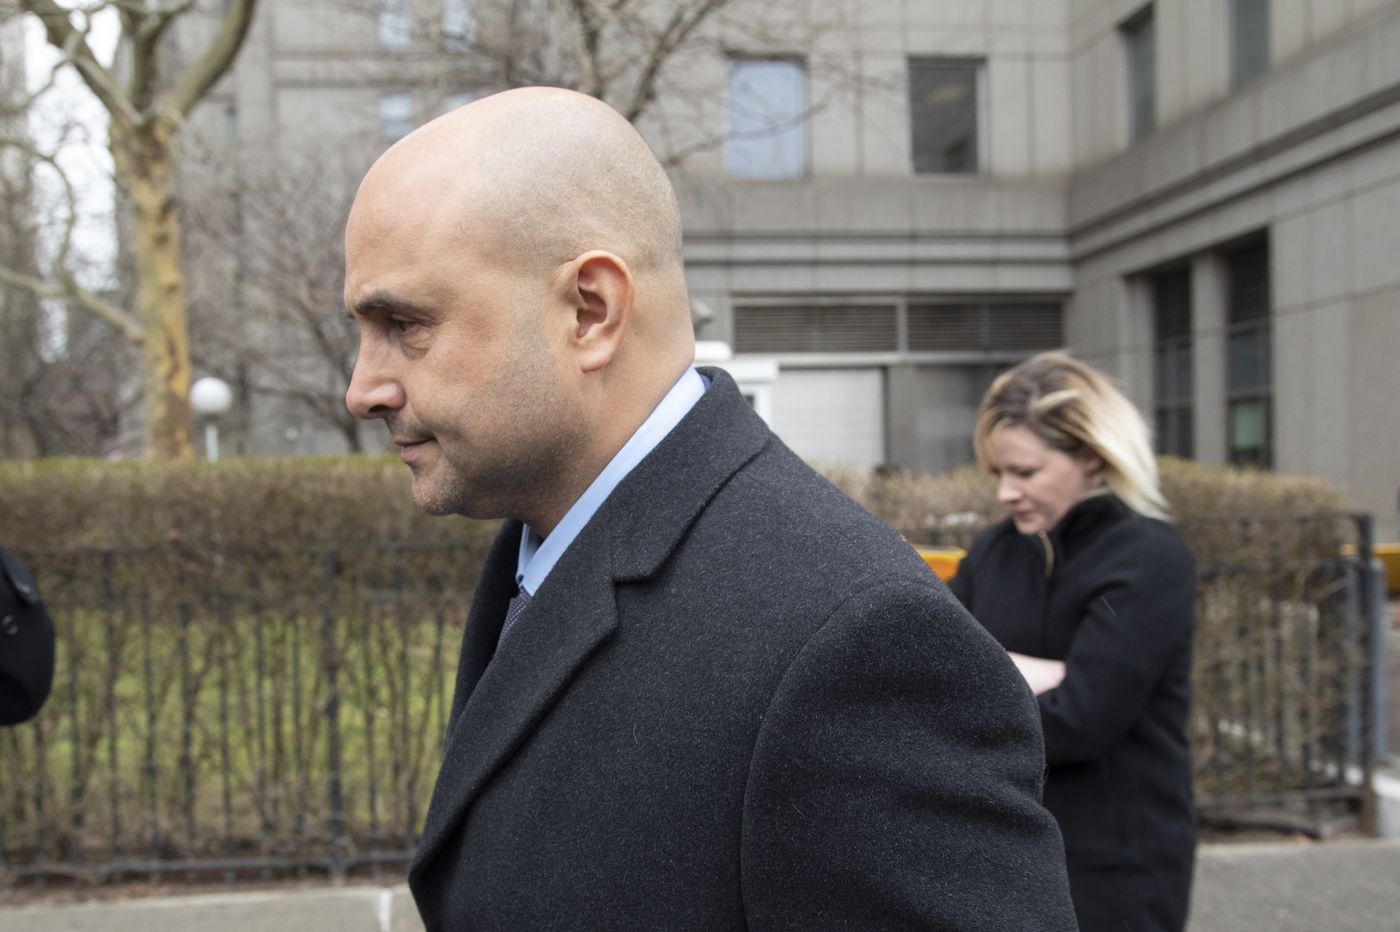 Former sports radio co-host Carton gets 3½ years in prison